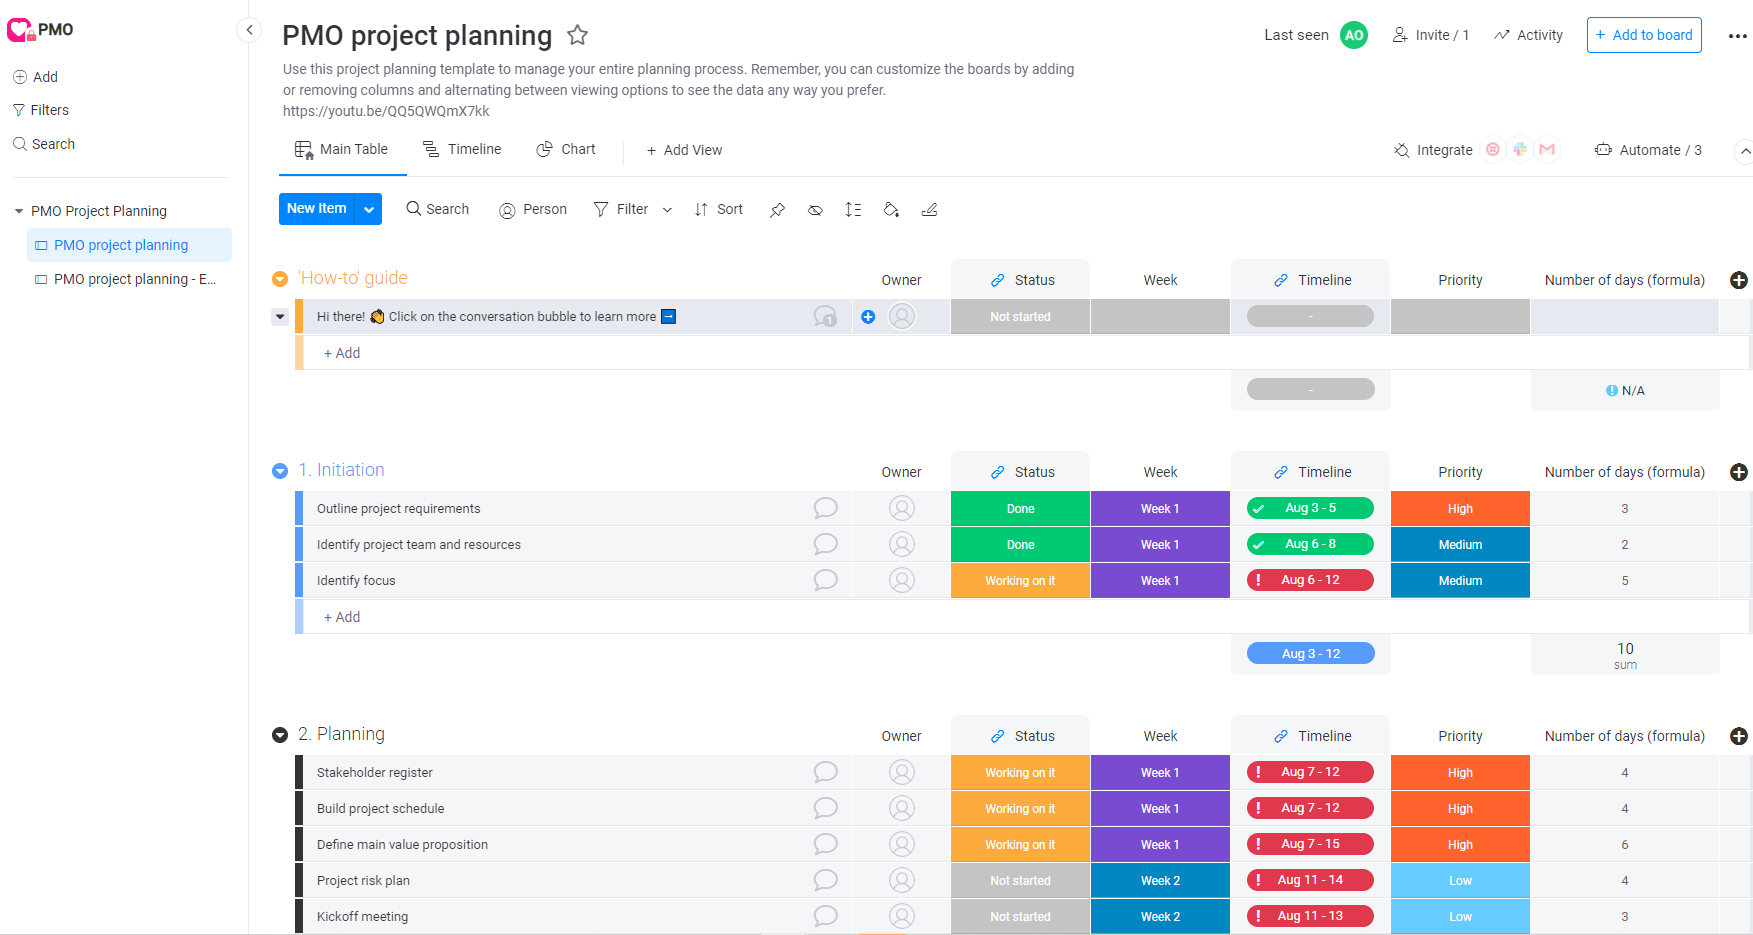 PMO project planning